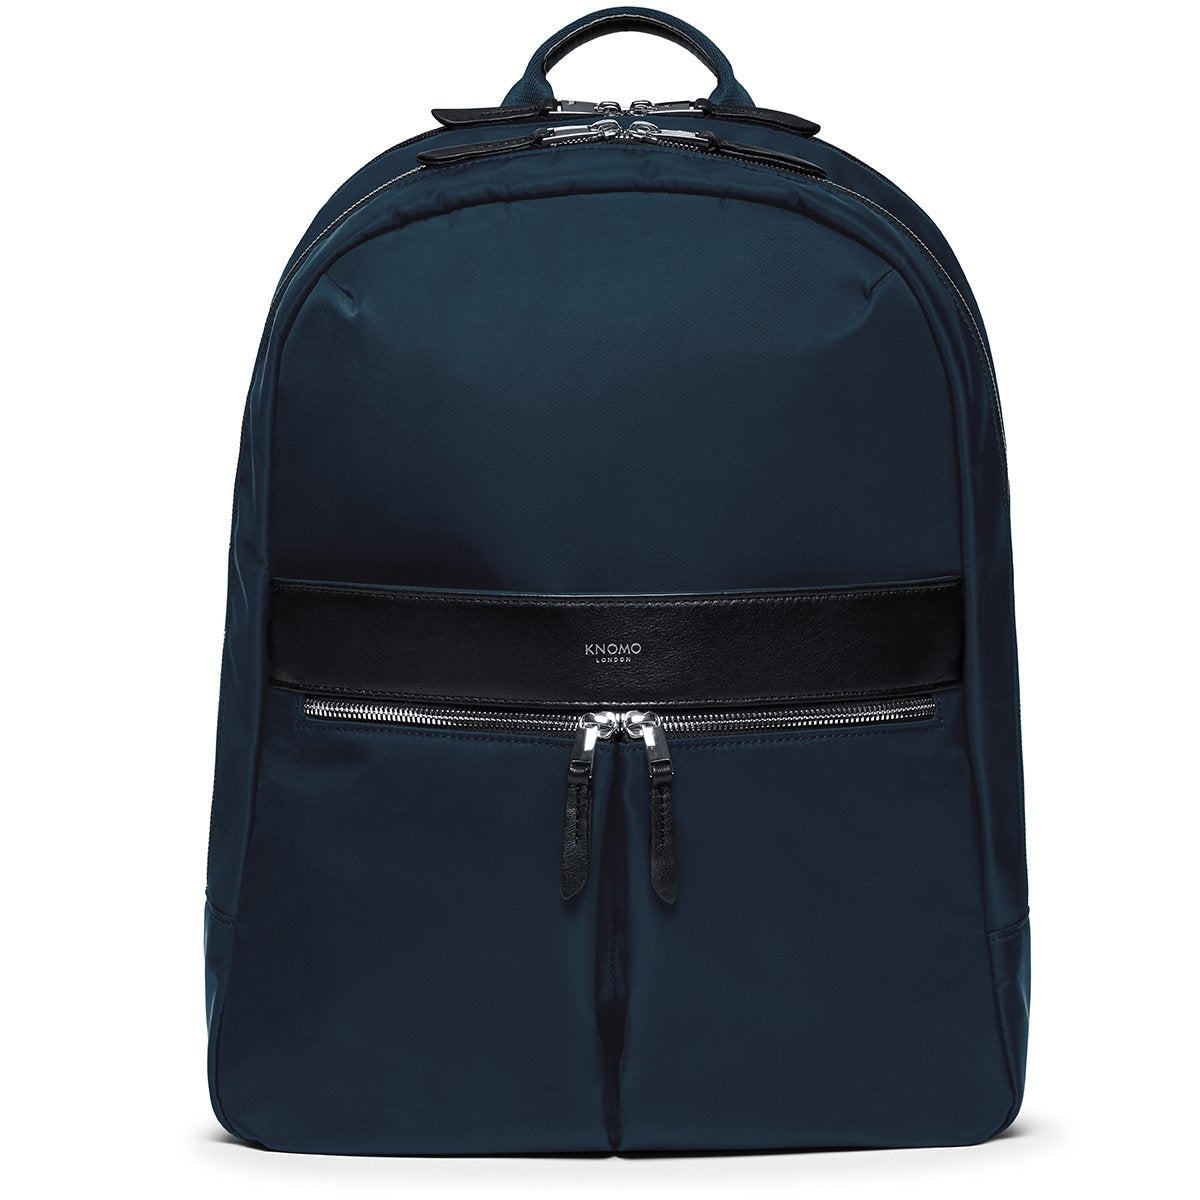 "Beaufort Laptop Backpack - 15.6"" -  Dark Navy Blazer 